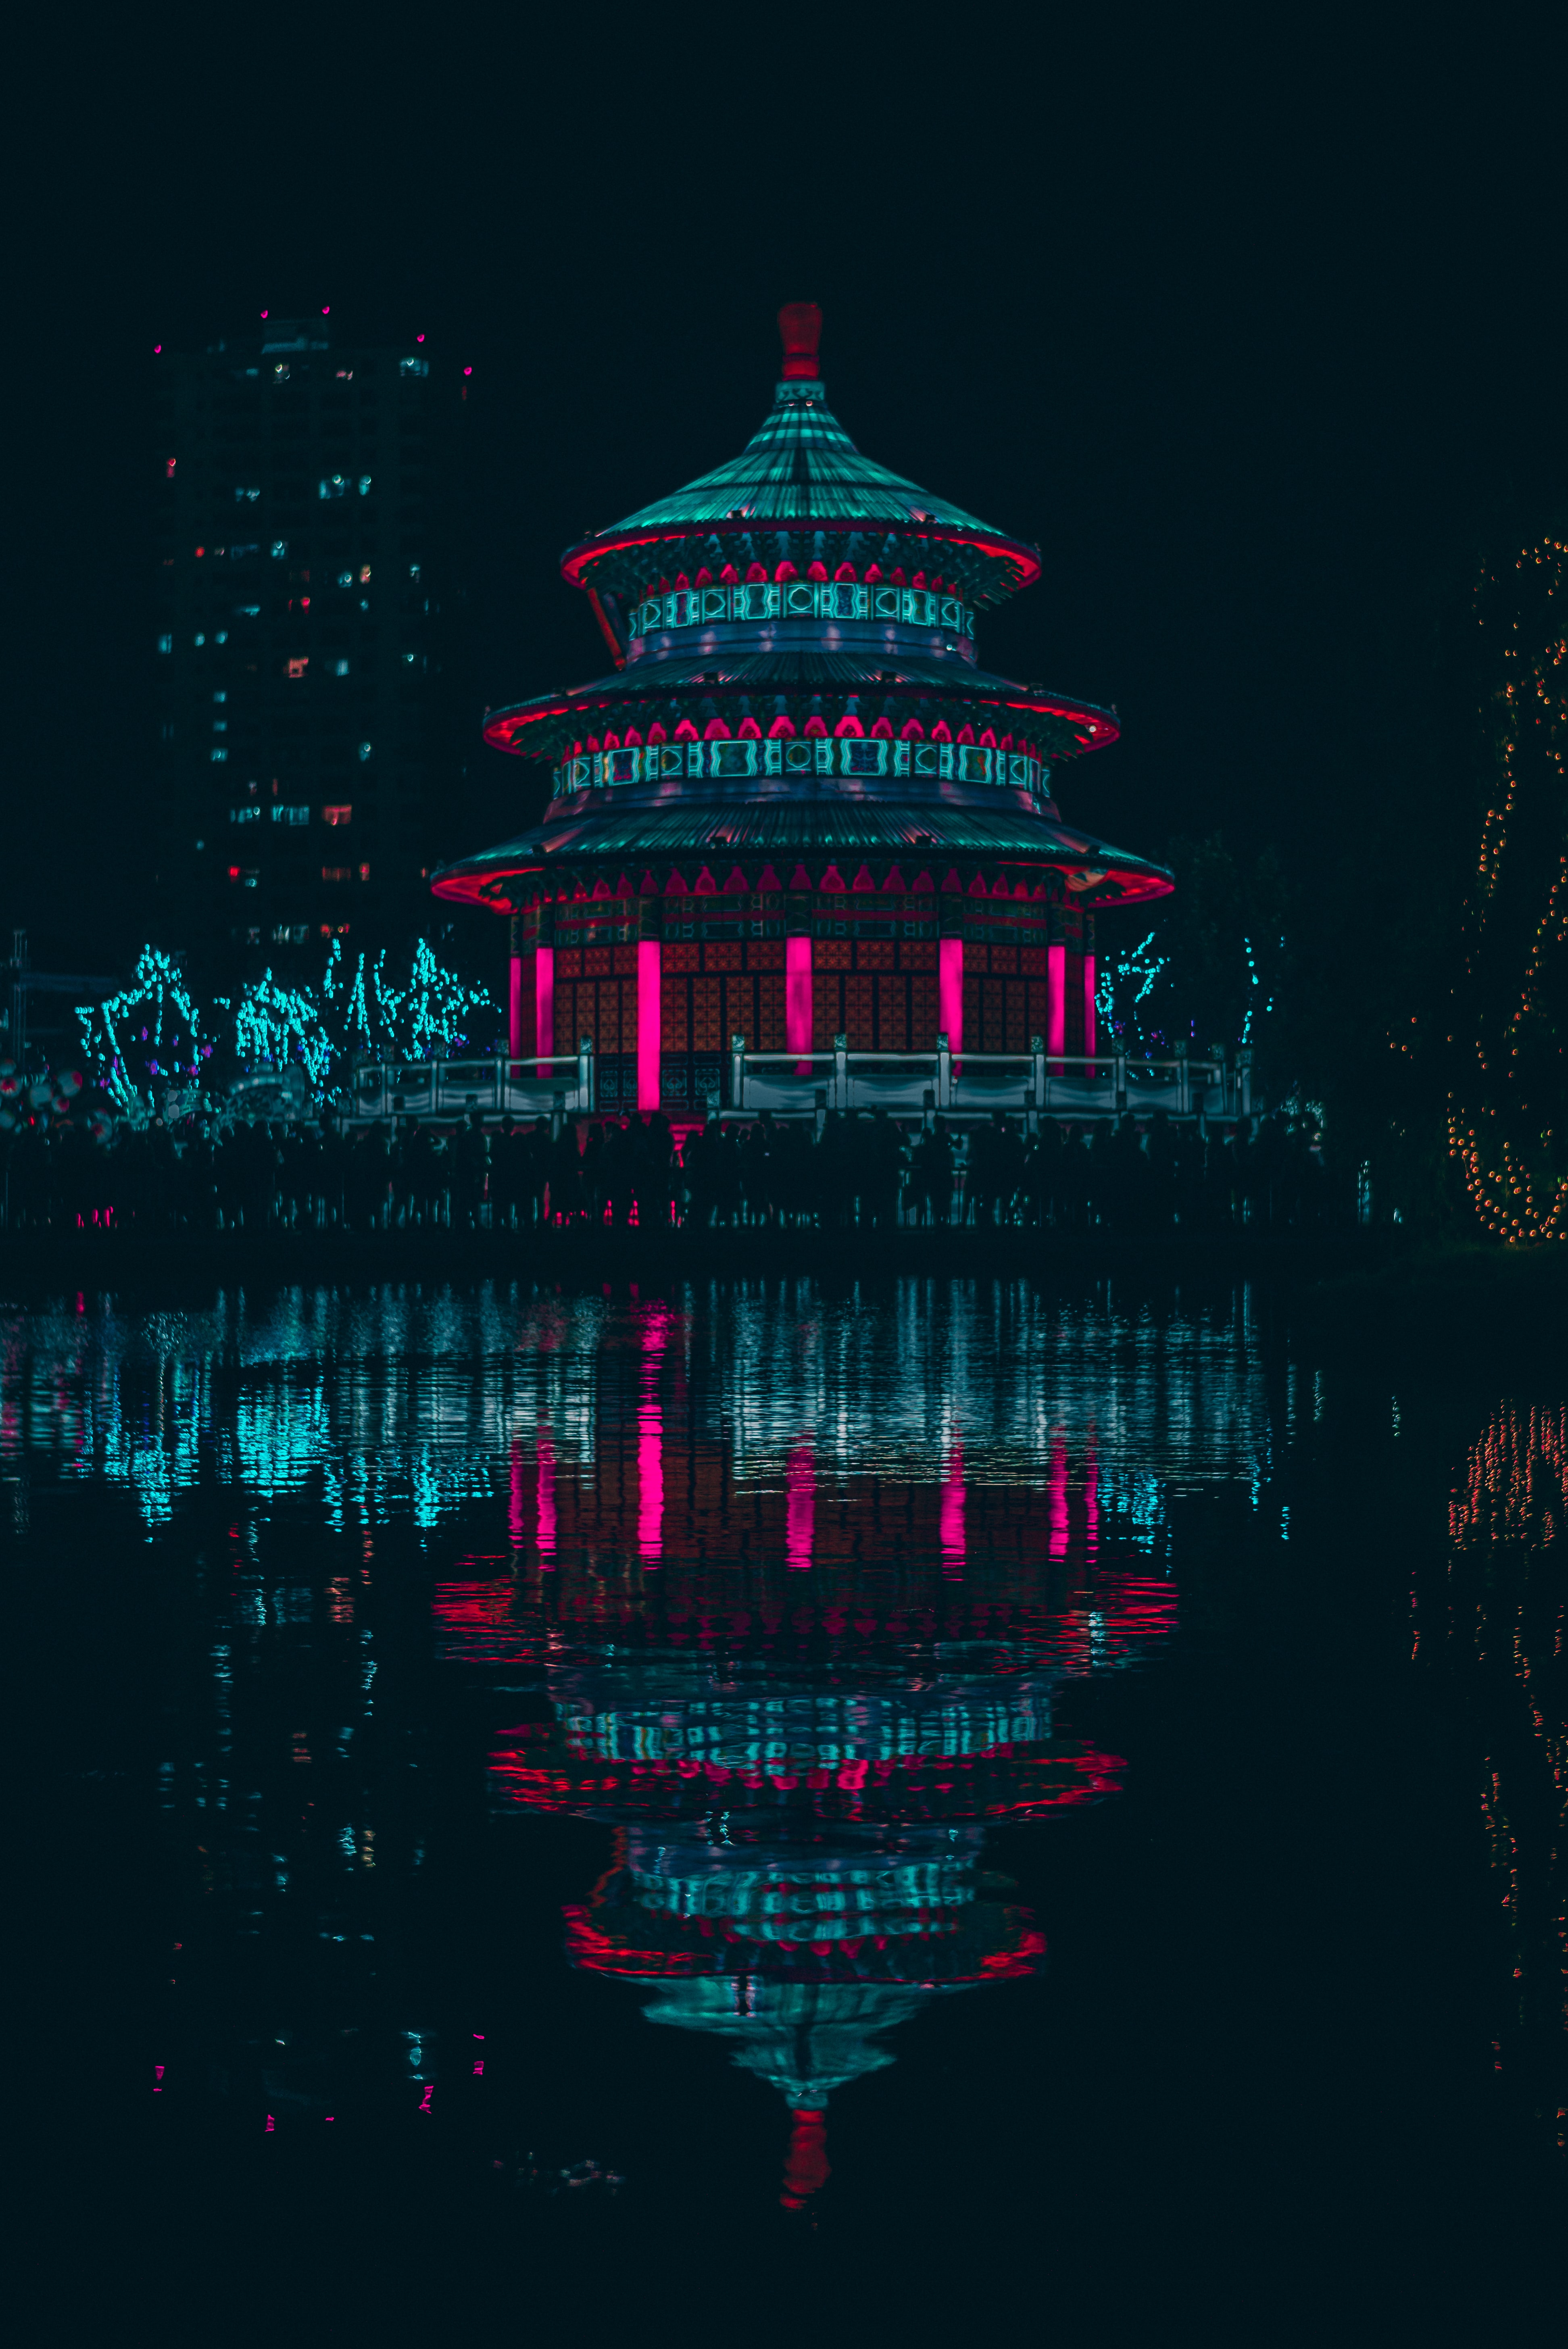 54490 download wallpaper Dark, Water, Building, Reflection, Neon screensavers and pictures for free